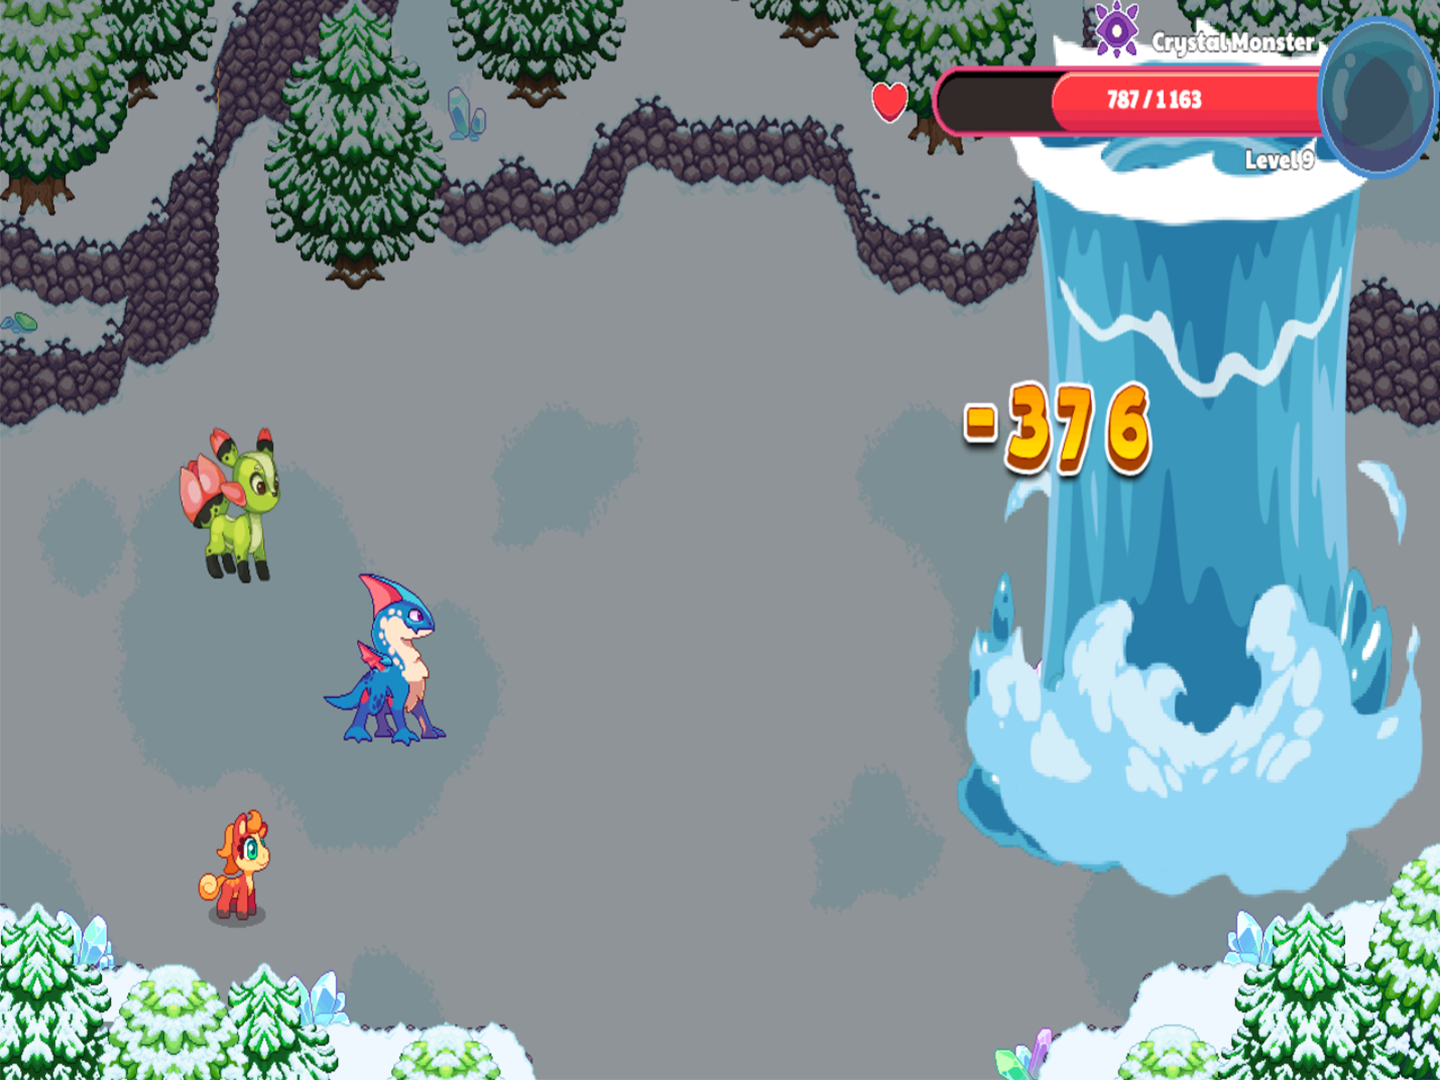 Screen shot from Prodigy Math Game showing Tidus battling a monster.